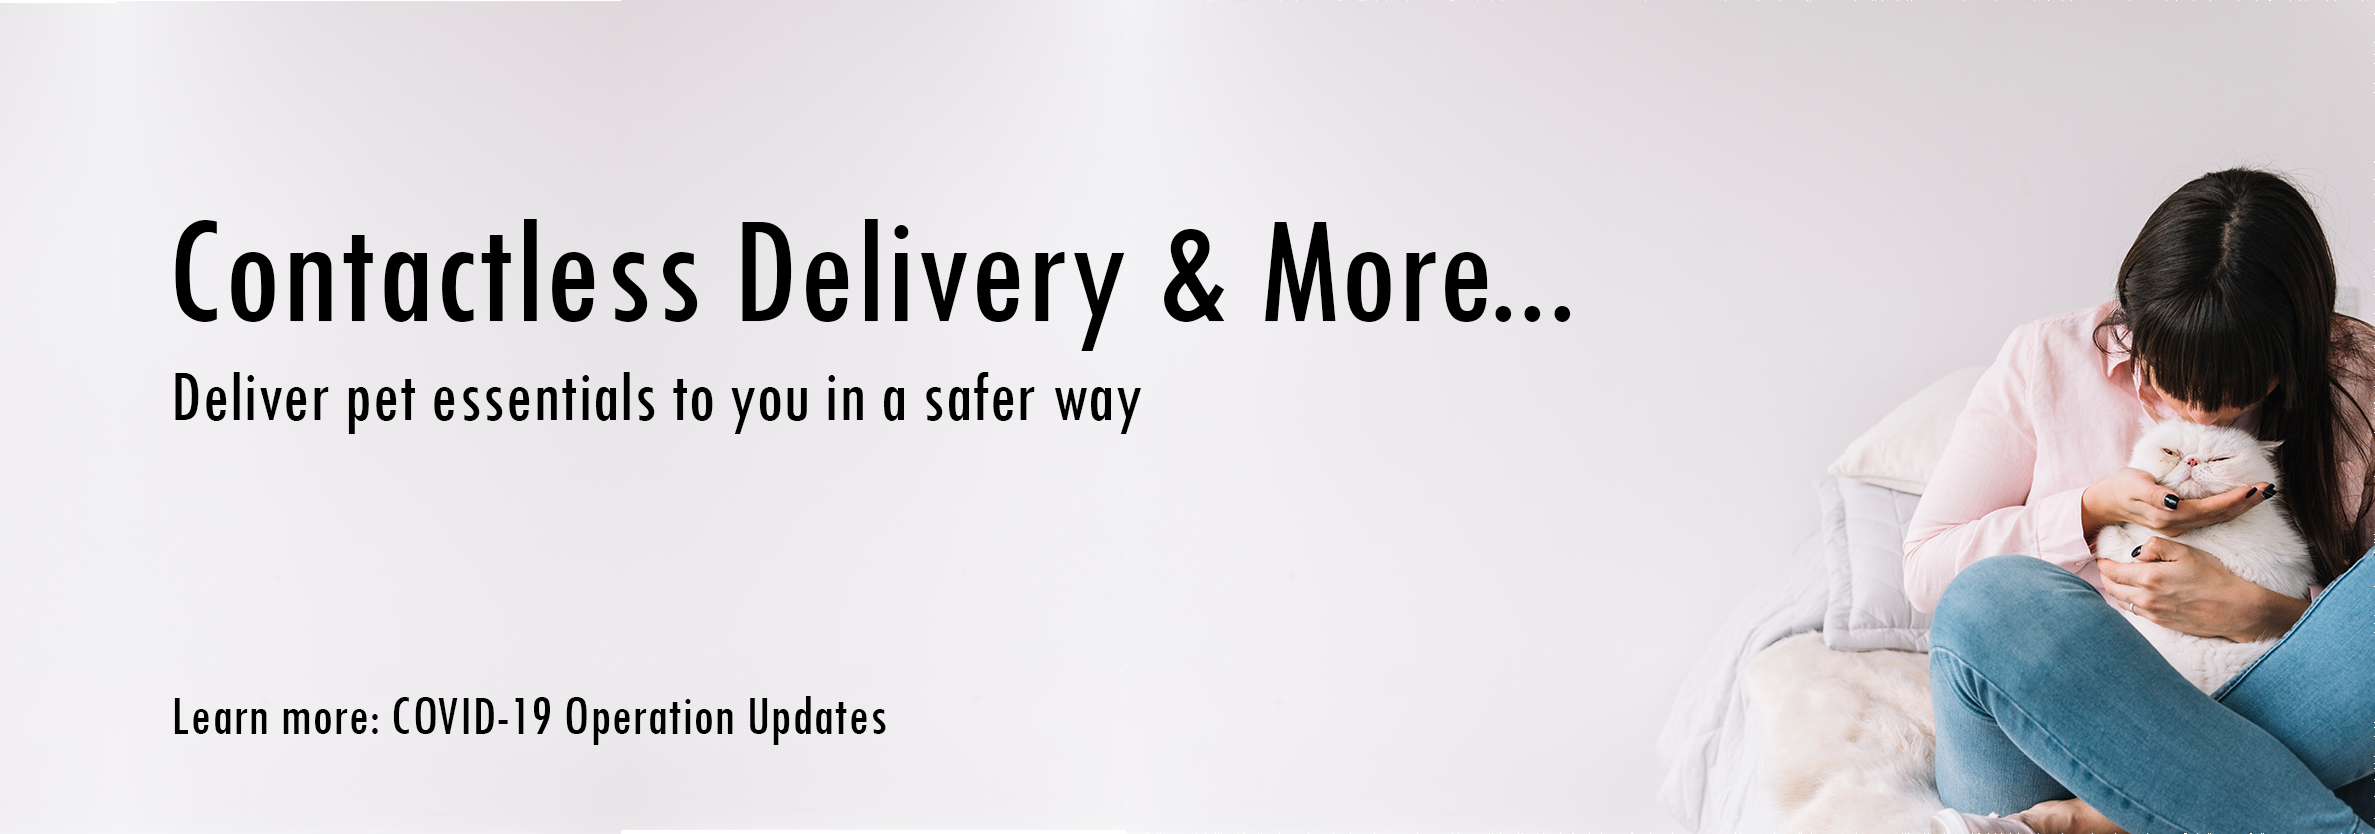 Contactless delivery new 2